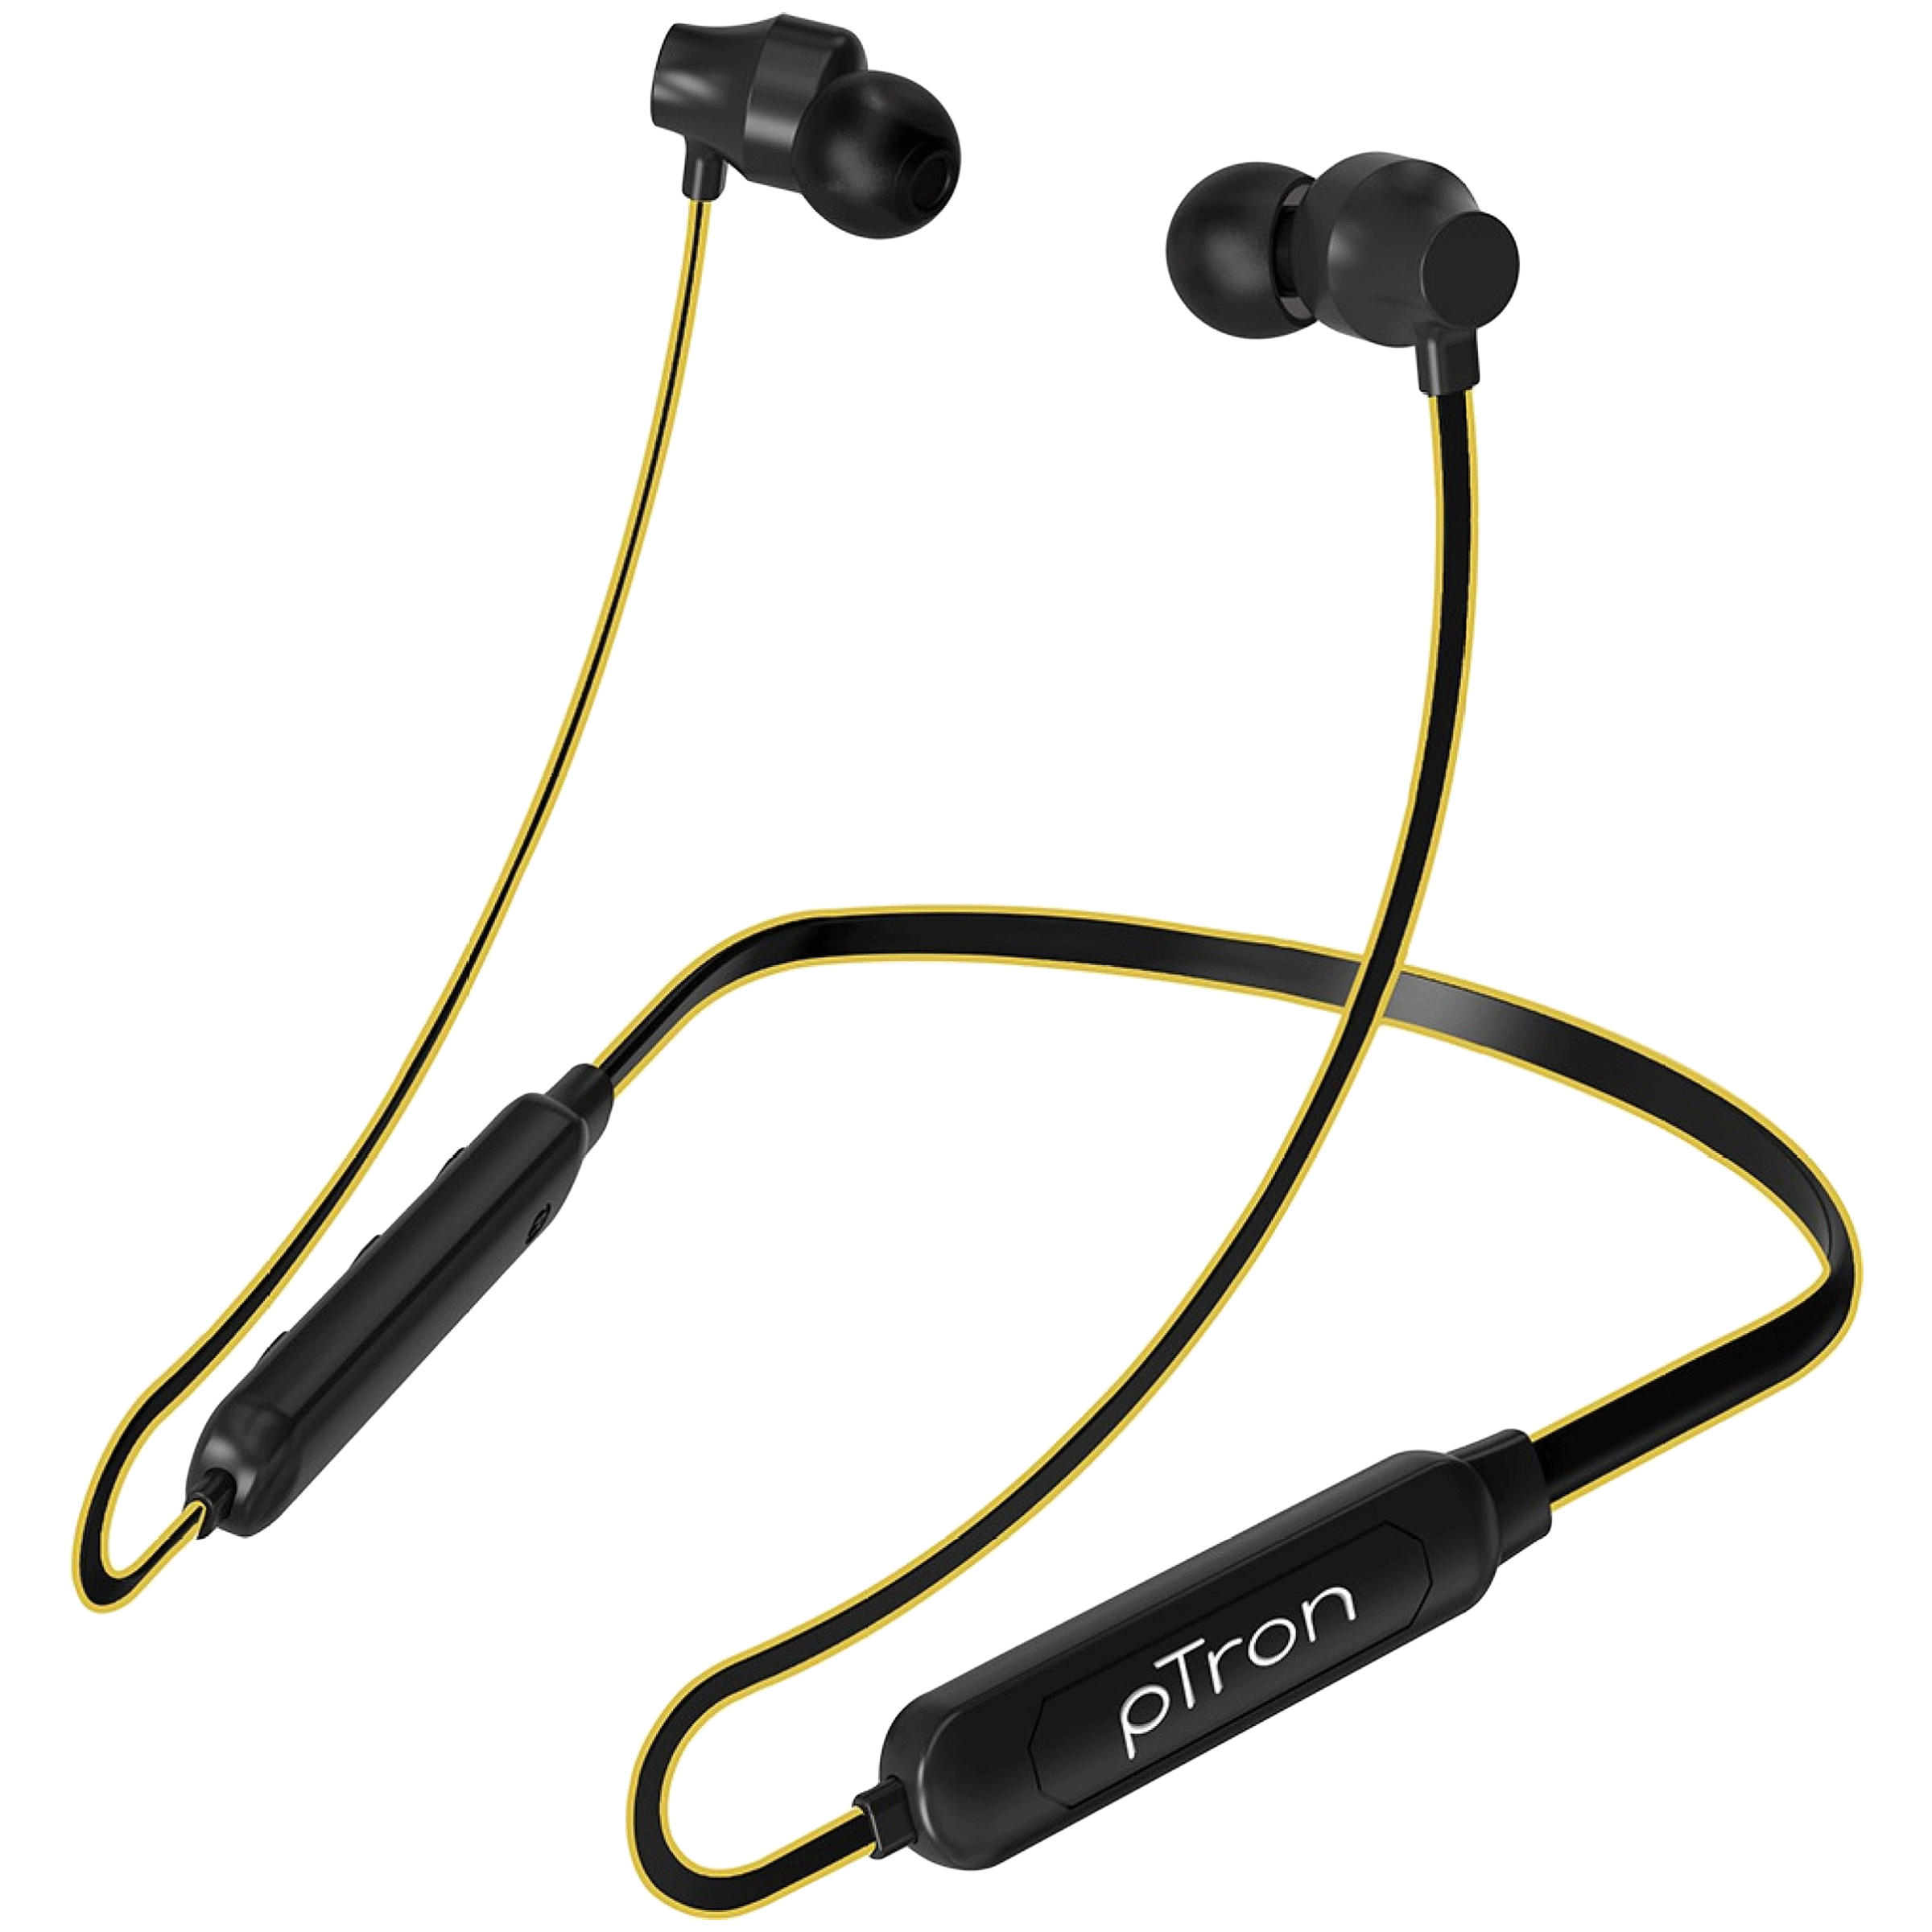 pTron InTunes Lite In-Ear Passive Noise Cancellation Wireless Earphone with Mic (Bluetooth 5.0, Magnetic Metal Earbuds, 140317787, Black/Yellow)_1